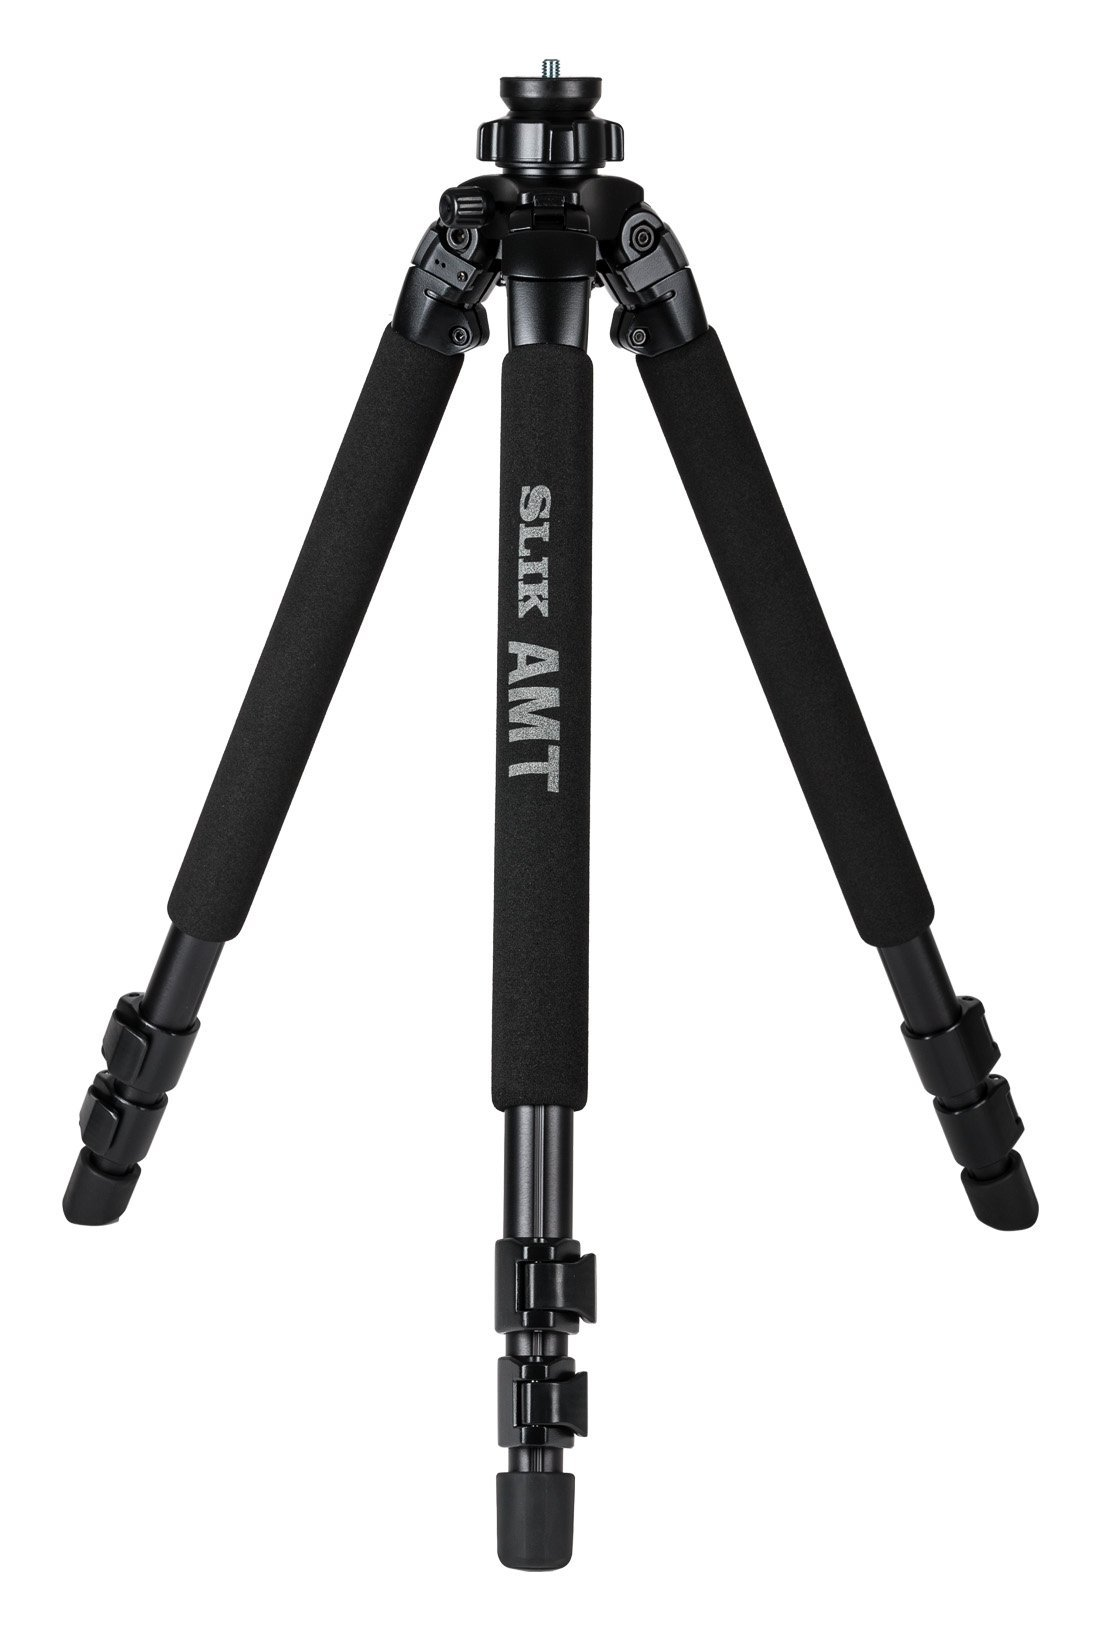 SLIK Pro 700 DX Tripod Legs - Black (Renewed) by Slik